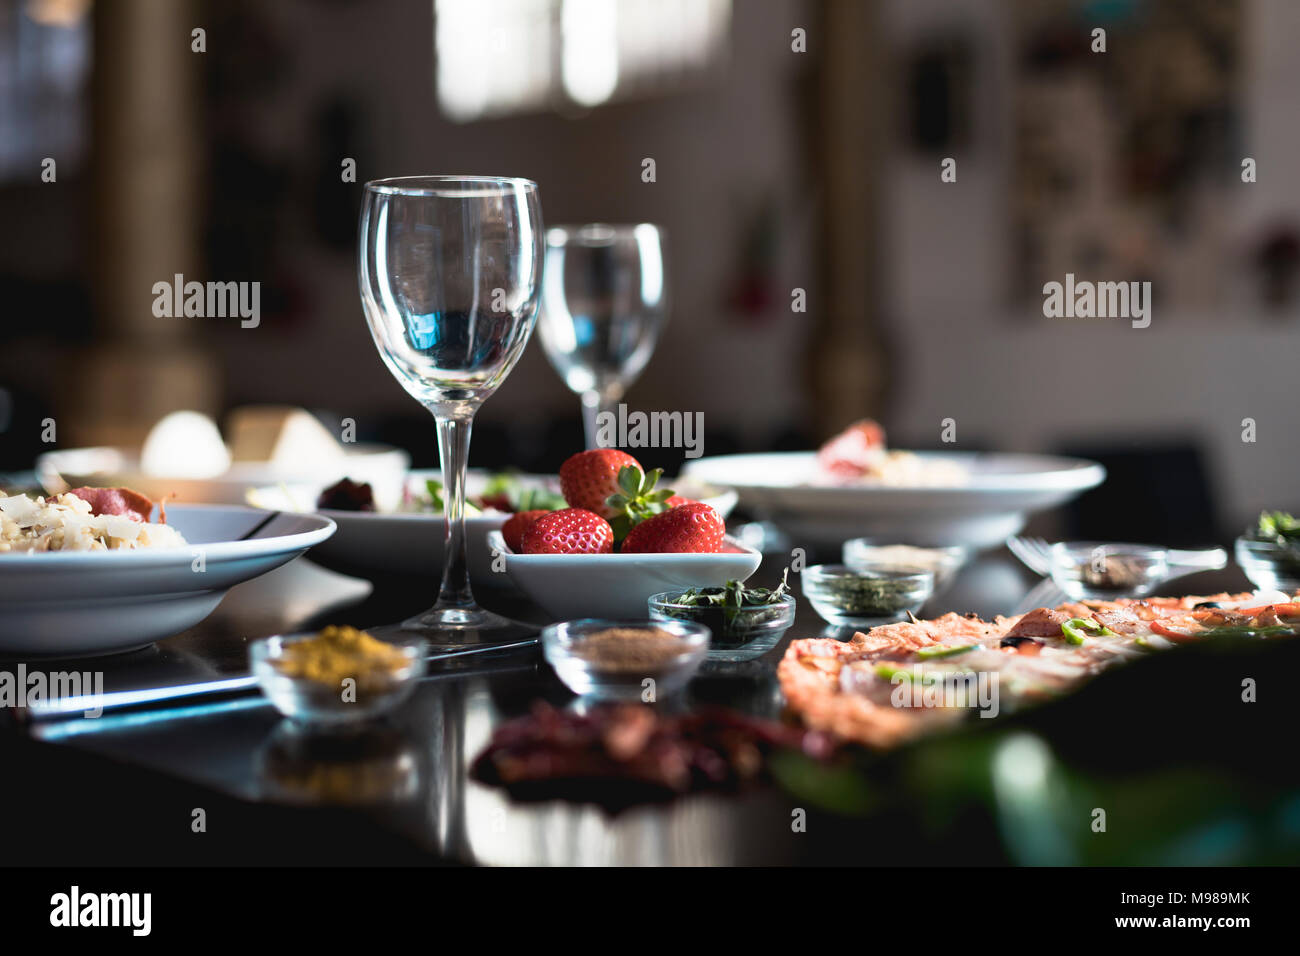 Italian food, pizza, salads and risotto - Stock Image